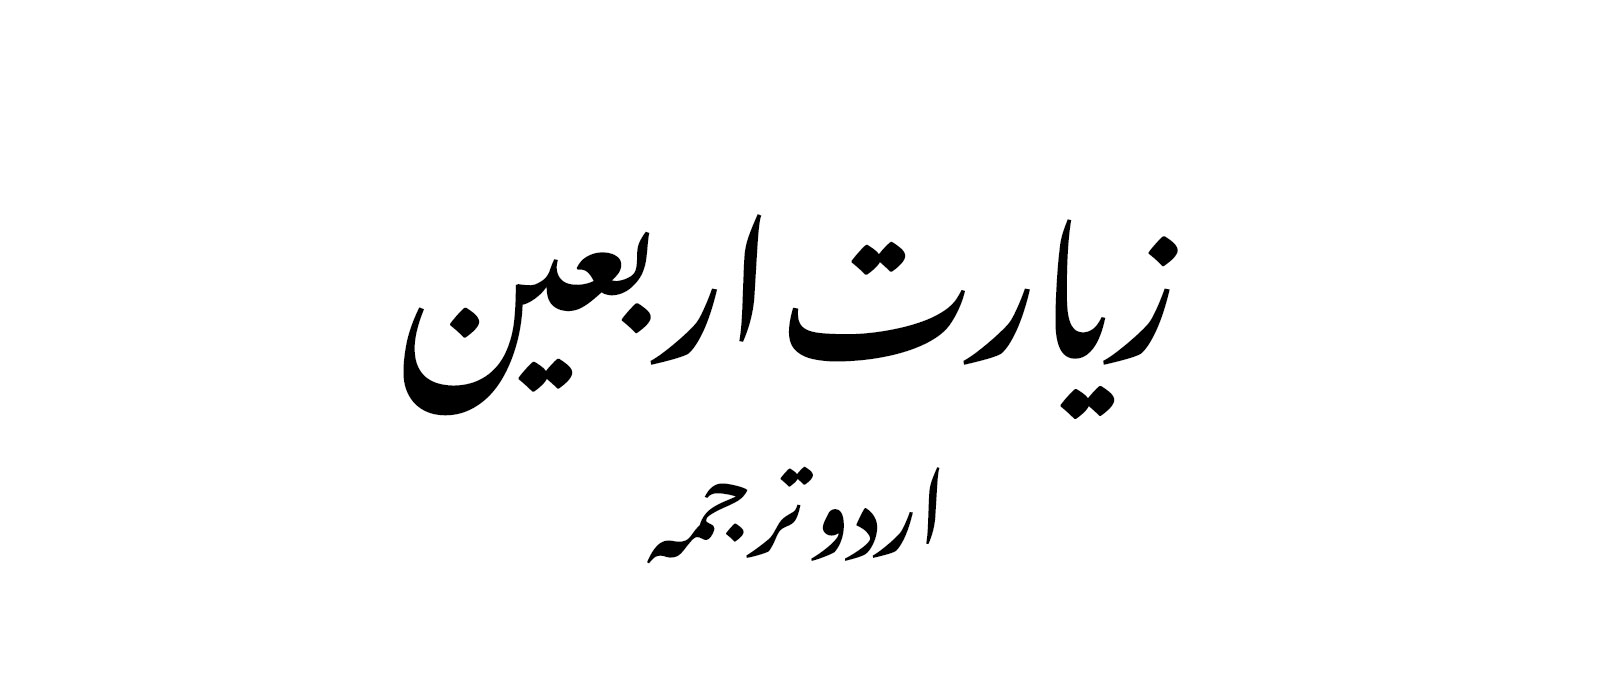 Ziyarat of Arbaeen in Urdu Script Translation